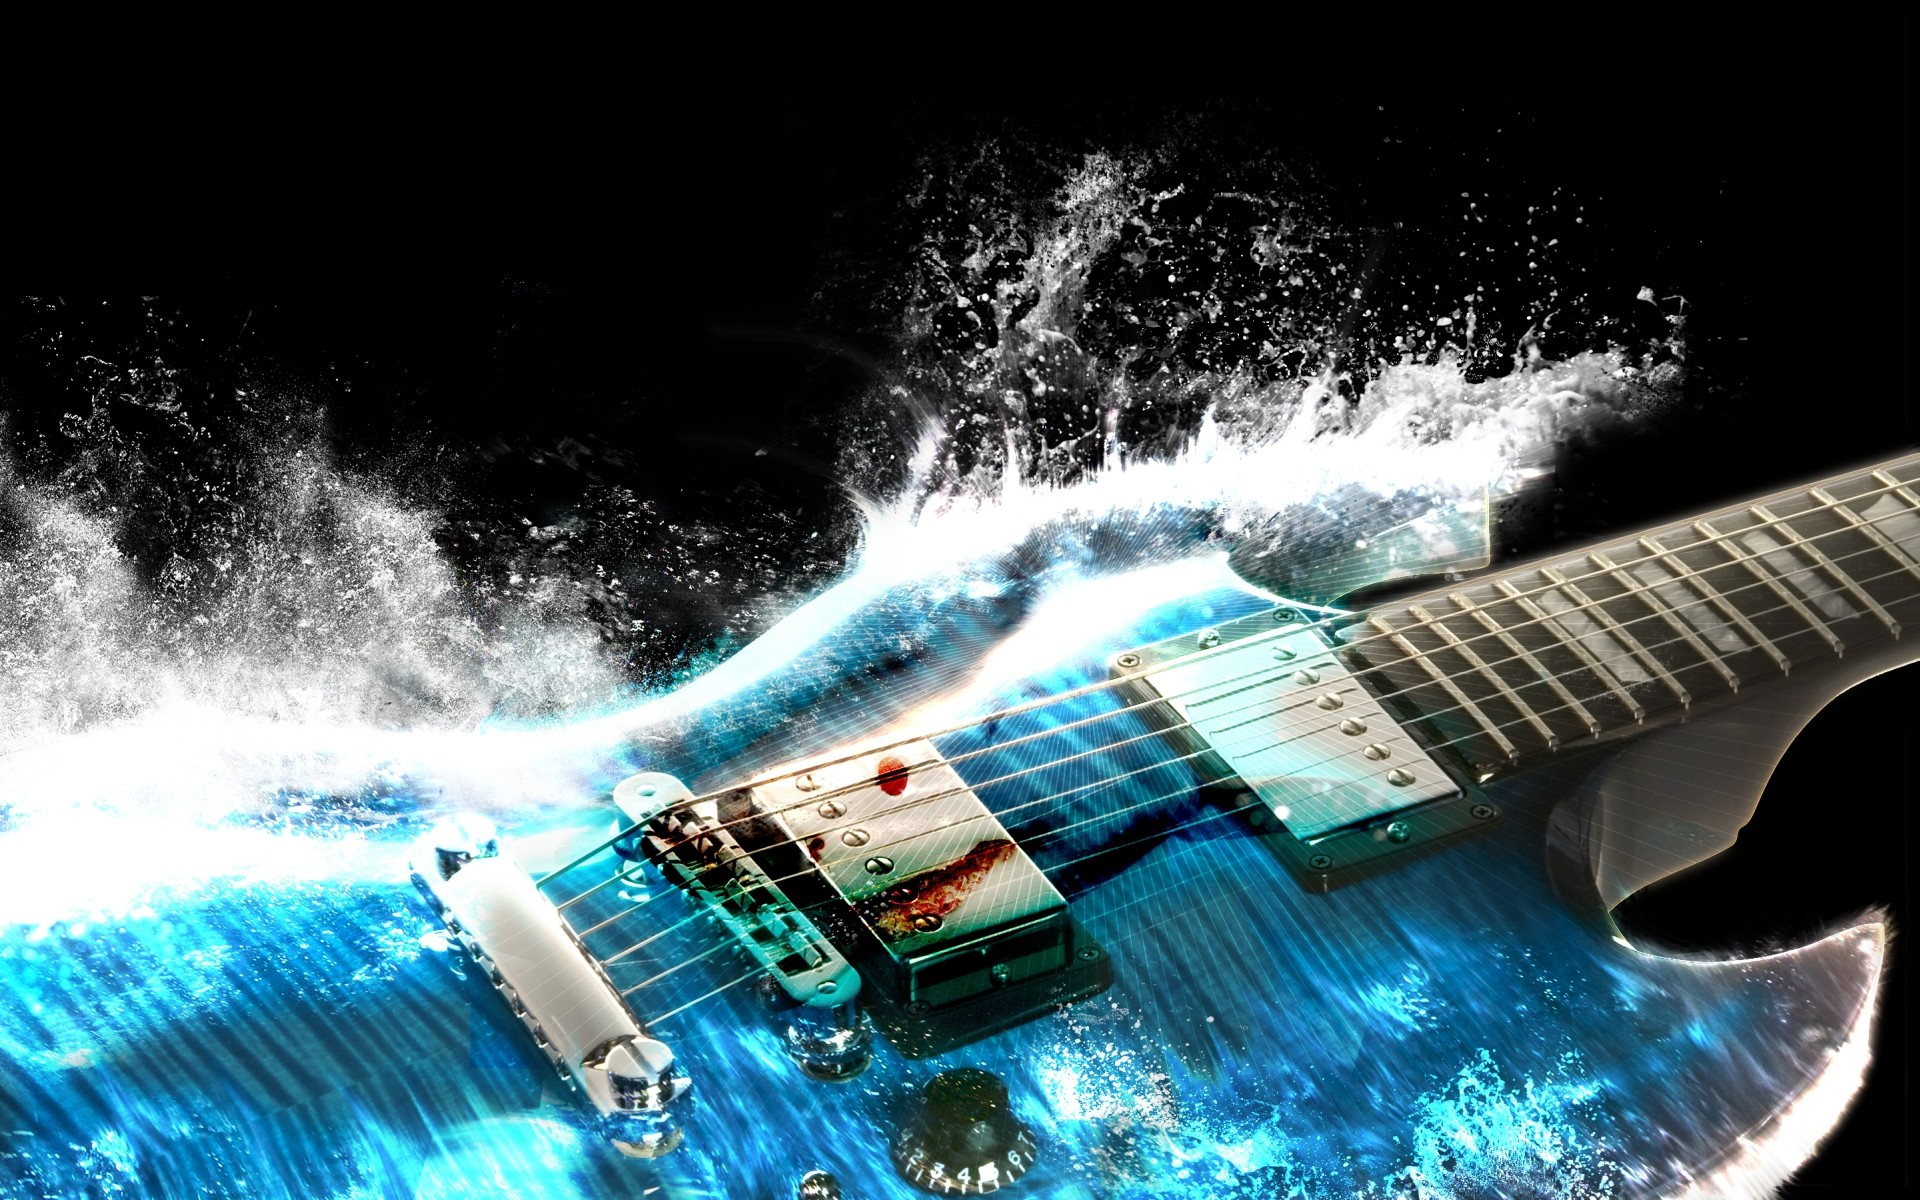 Music Sound Waves Live Wallpaper (74+ images)